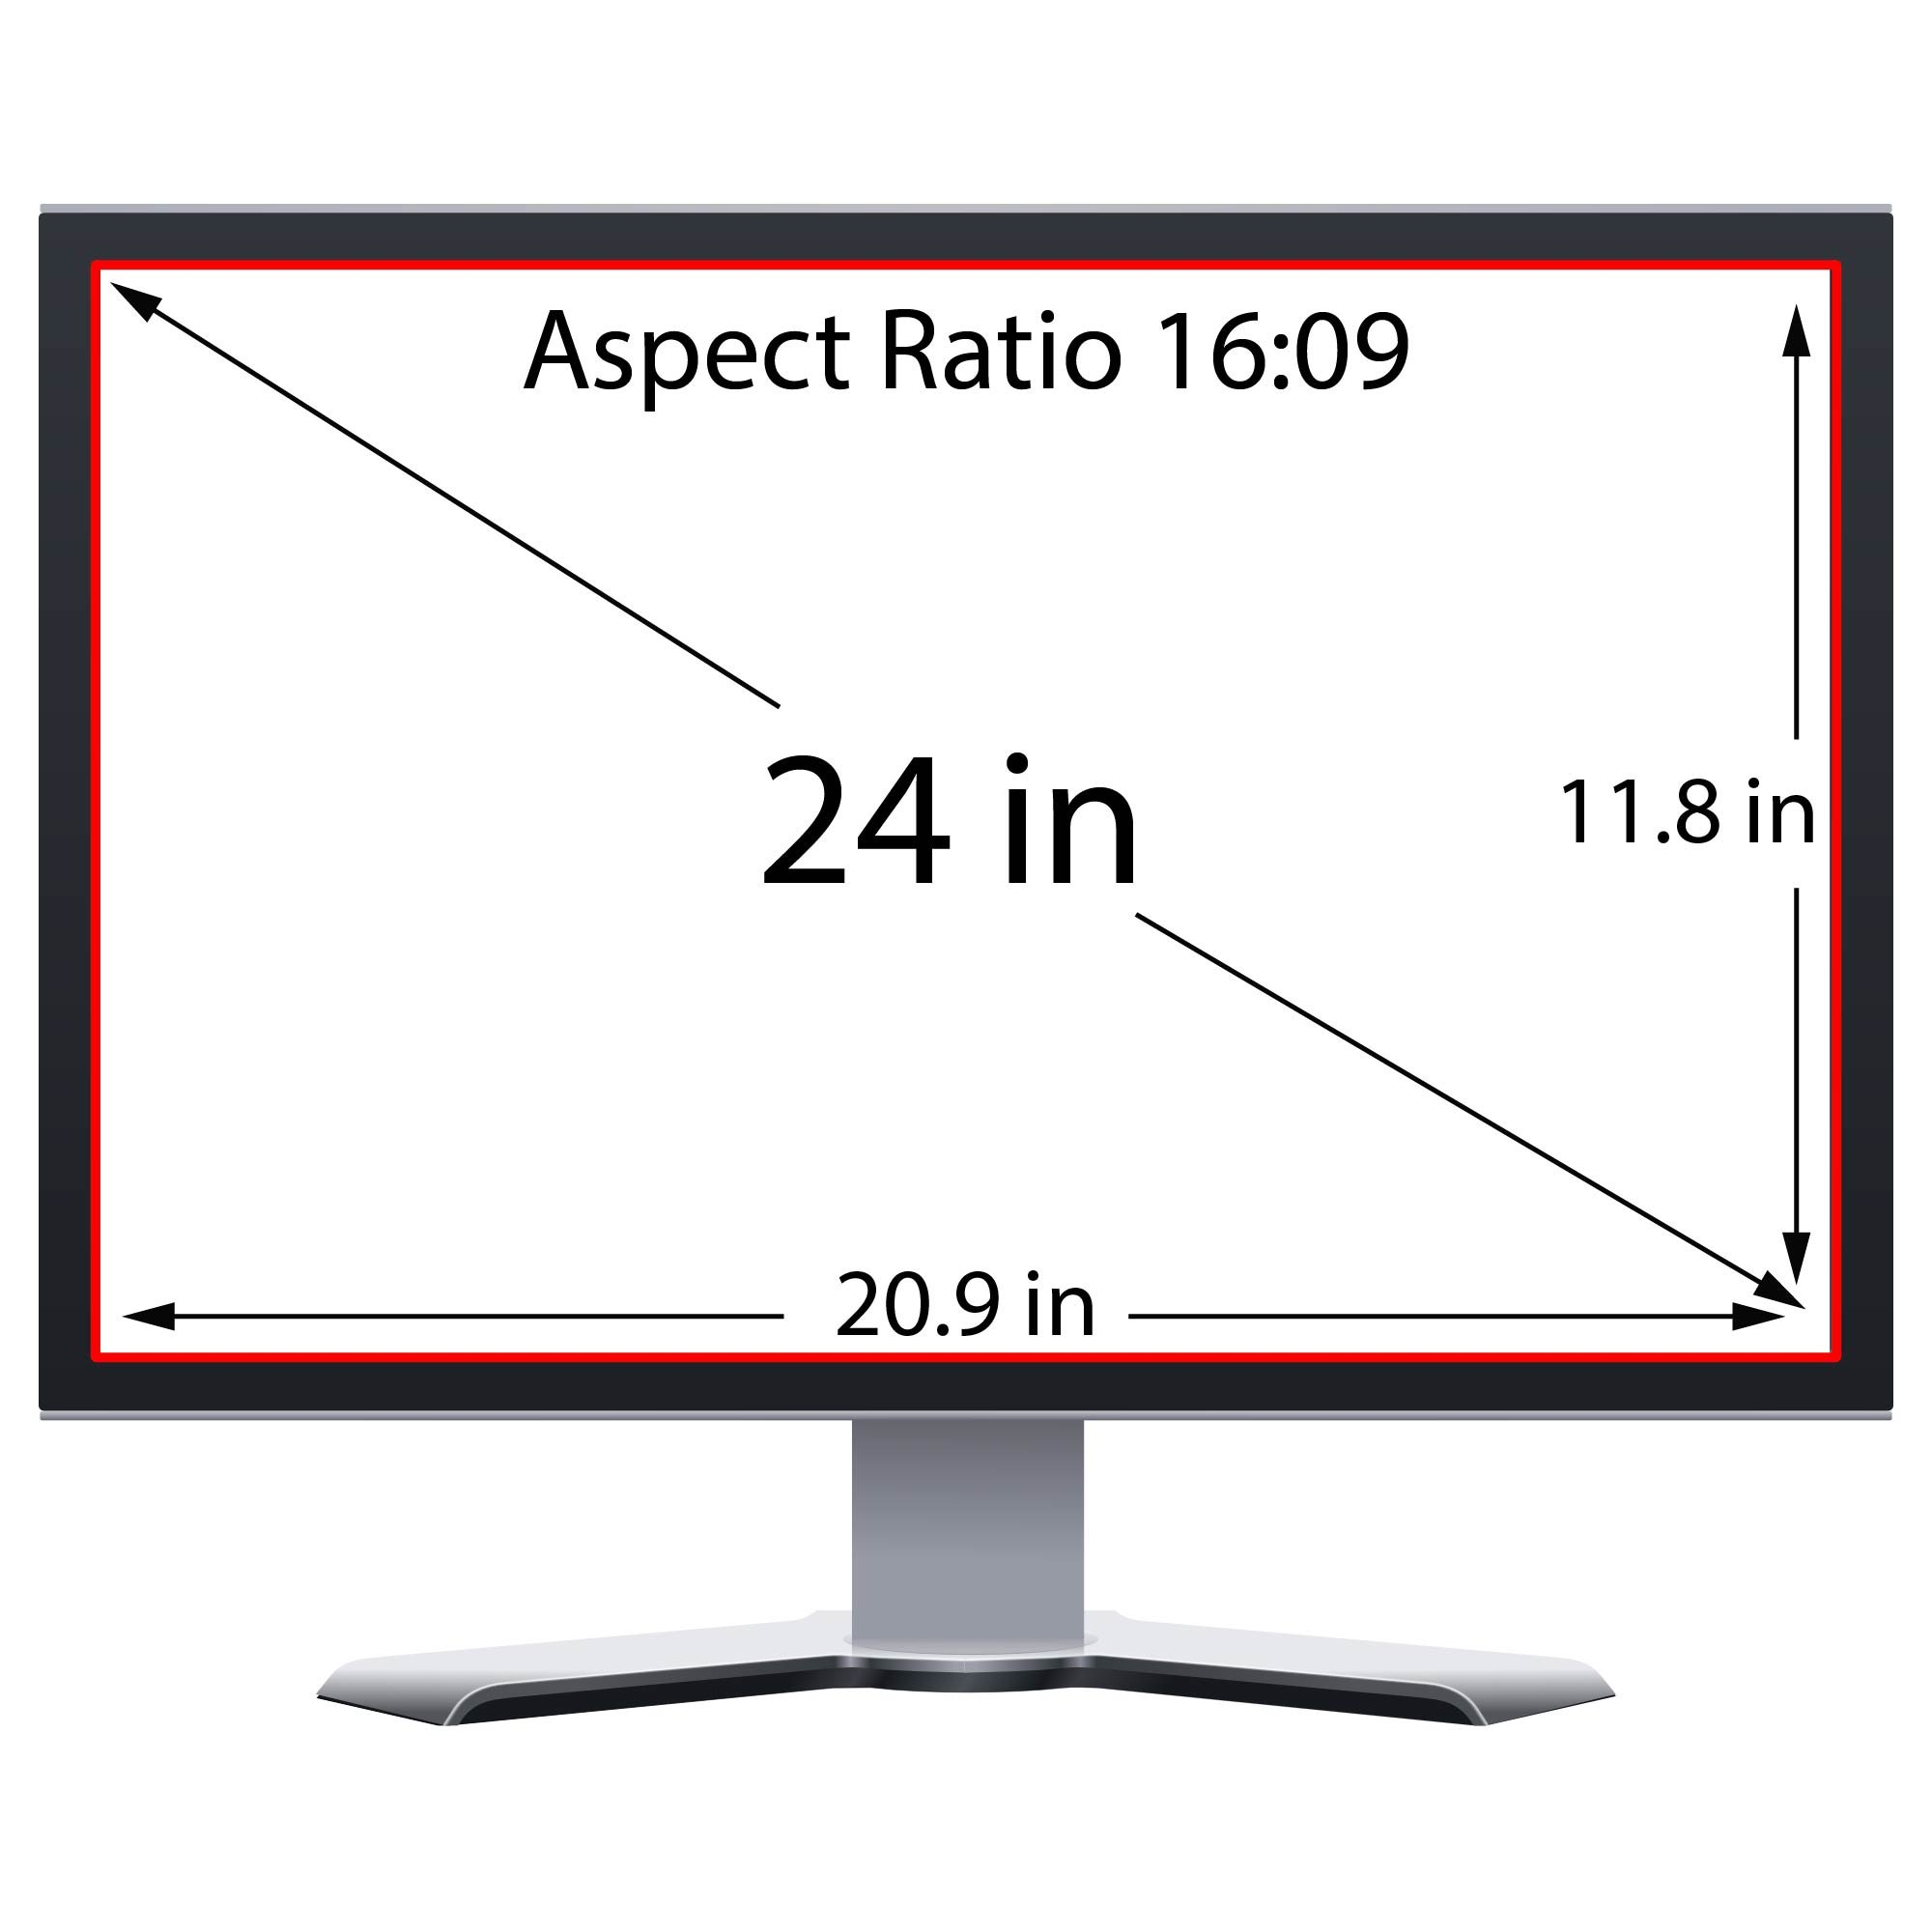 Privacy Screen Filter and Anti Glare for 24 Inches Desktop Computer Widescreen Monitor with Aspect Ratio 16:09 Please check Dimension Carefully